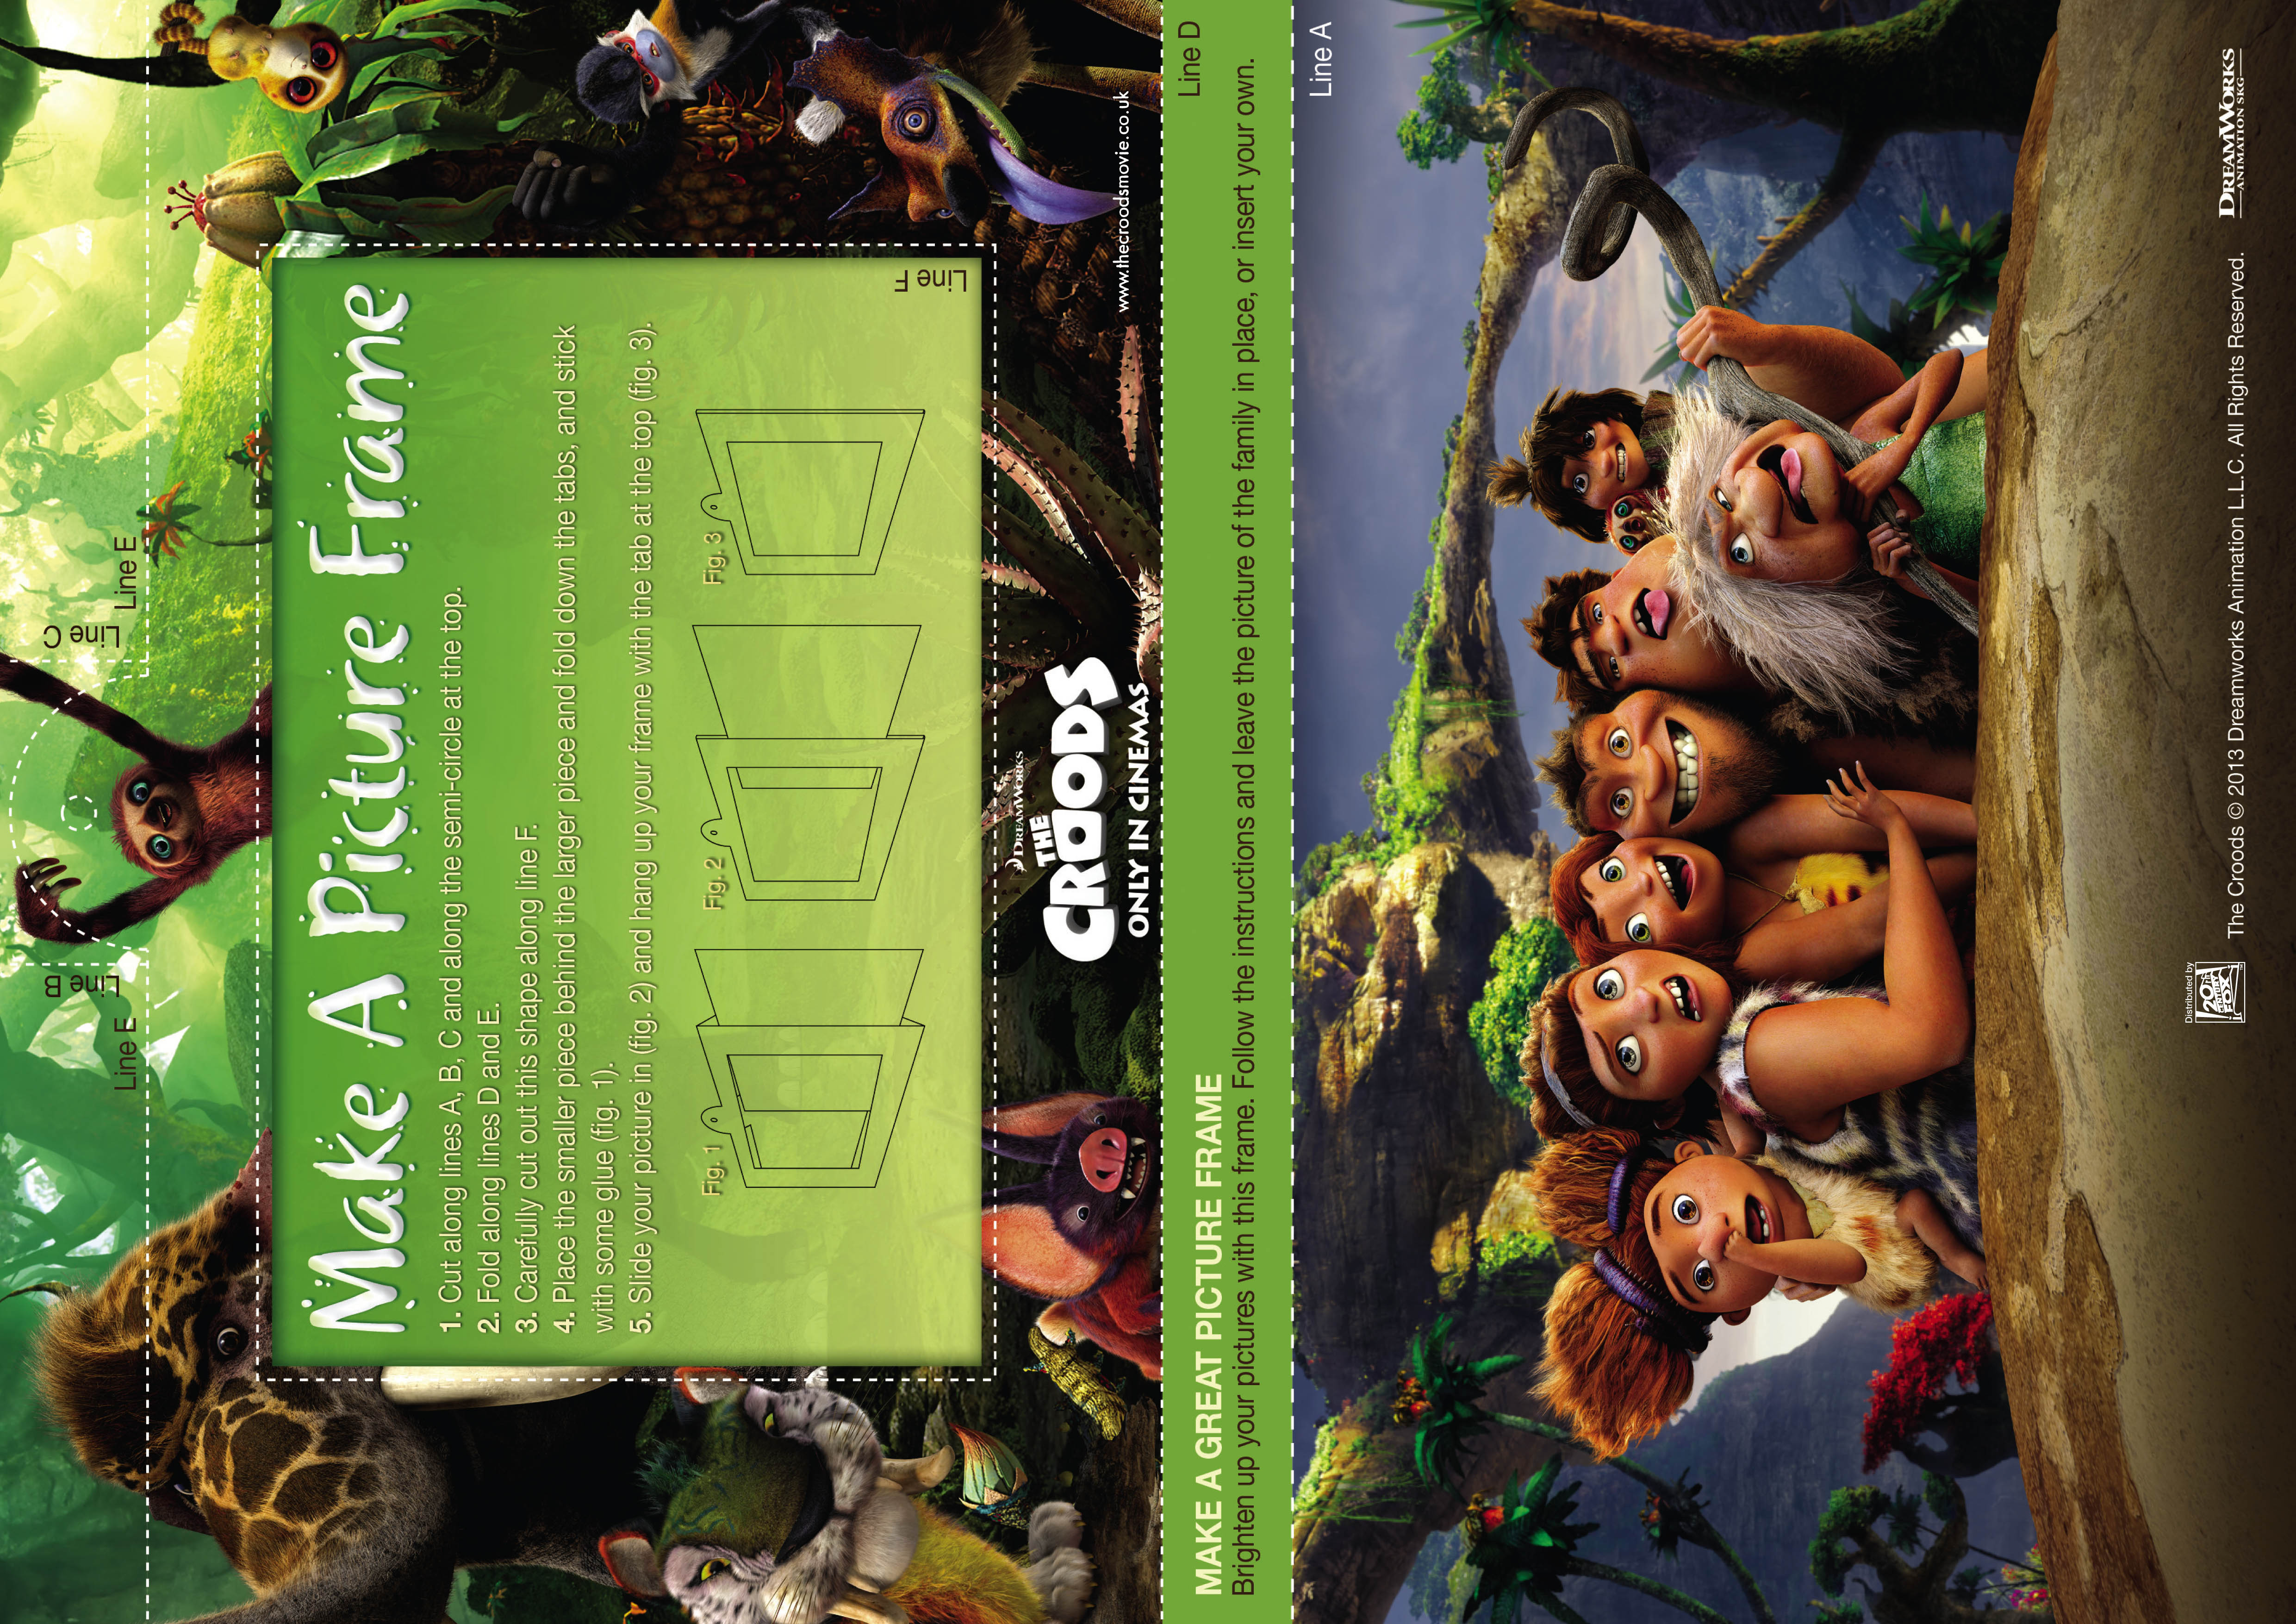 how long is the movie meet croods